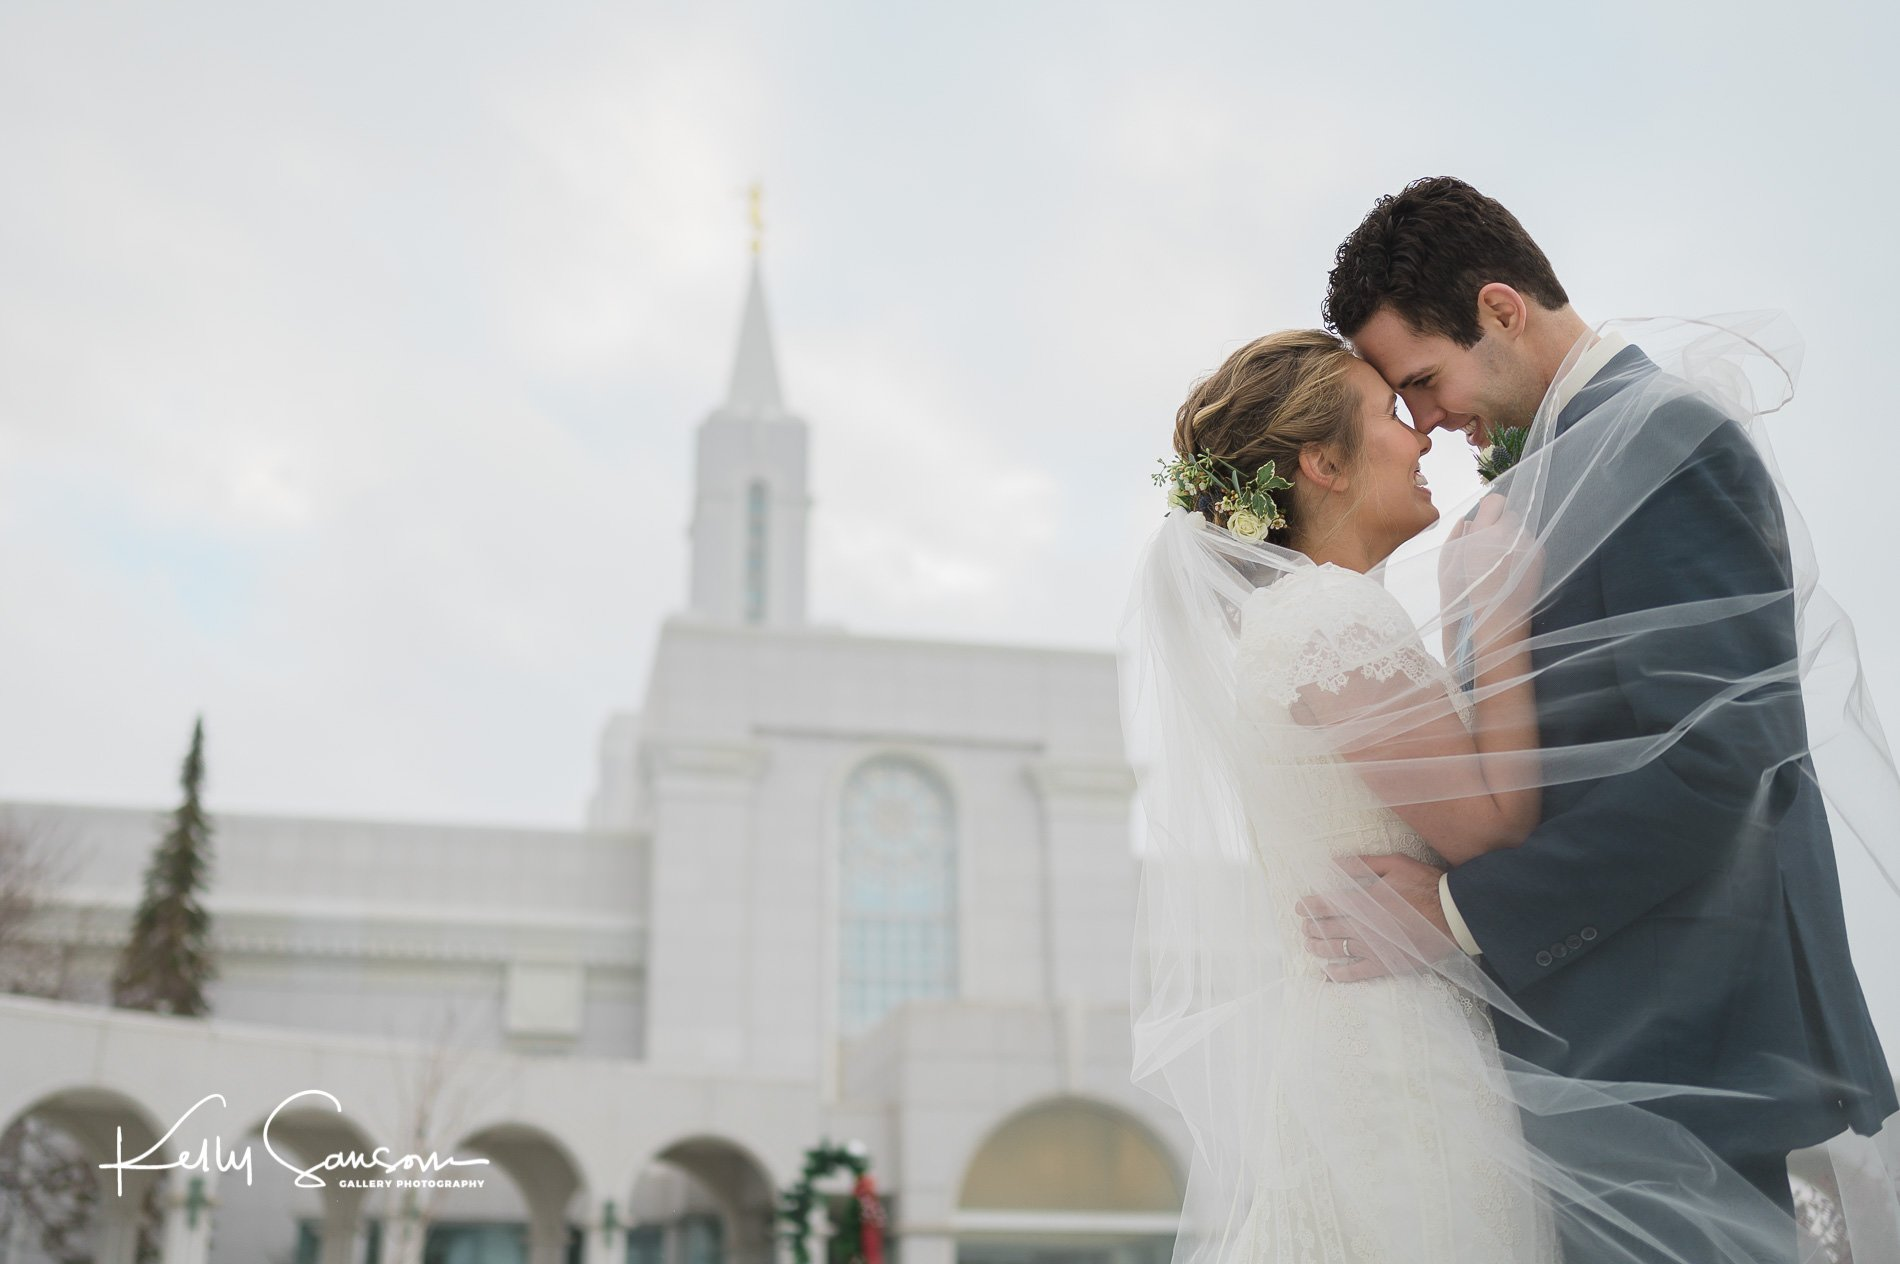 Rebekah and Kyle Wedding Photography at the Salt Lake Temple